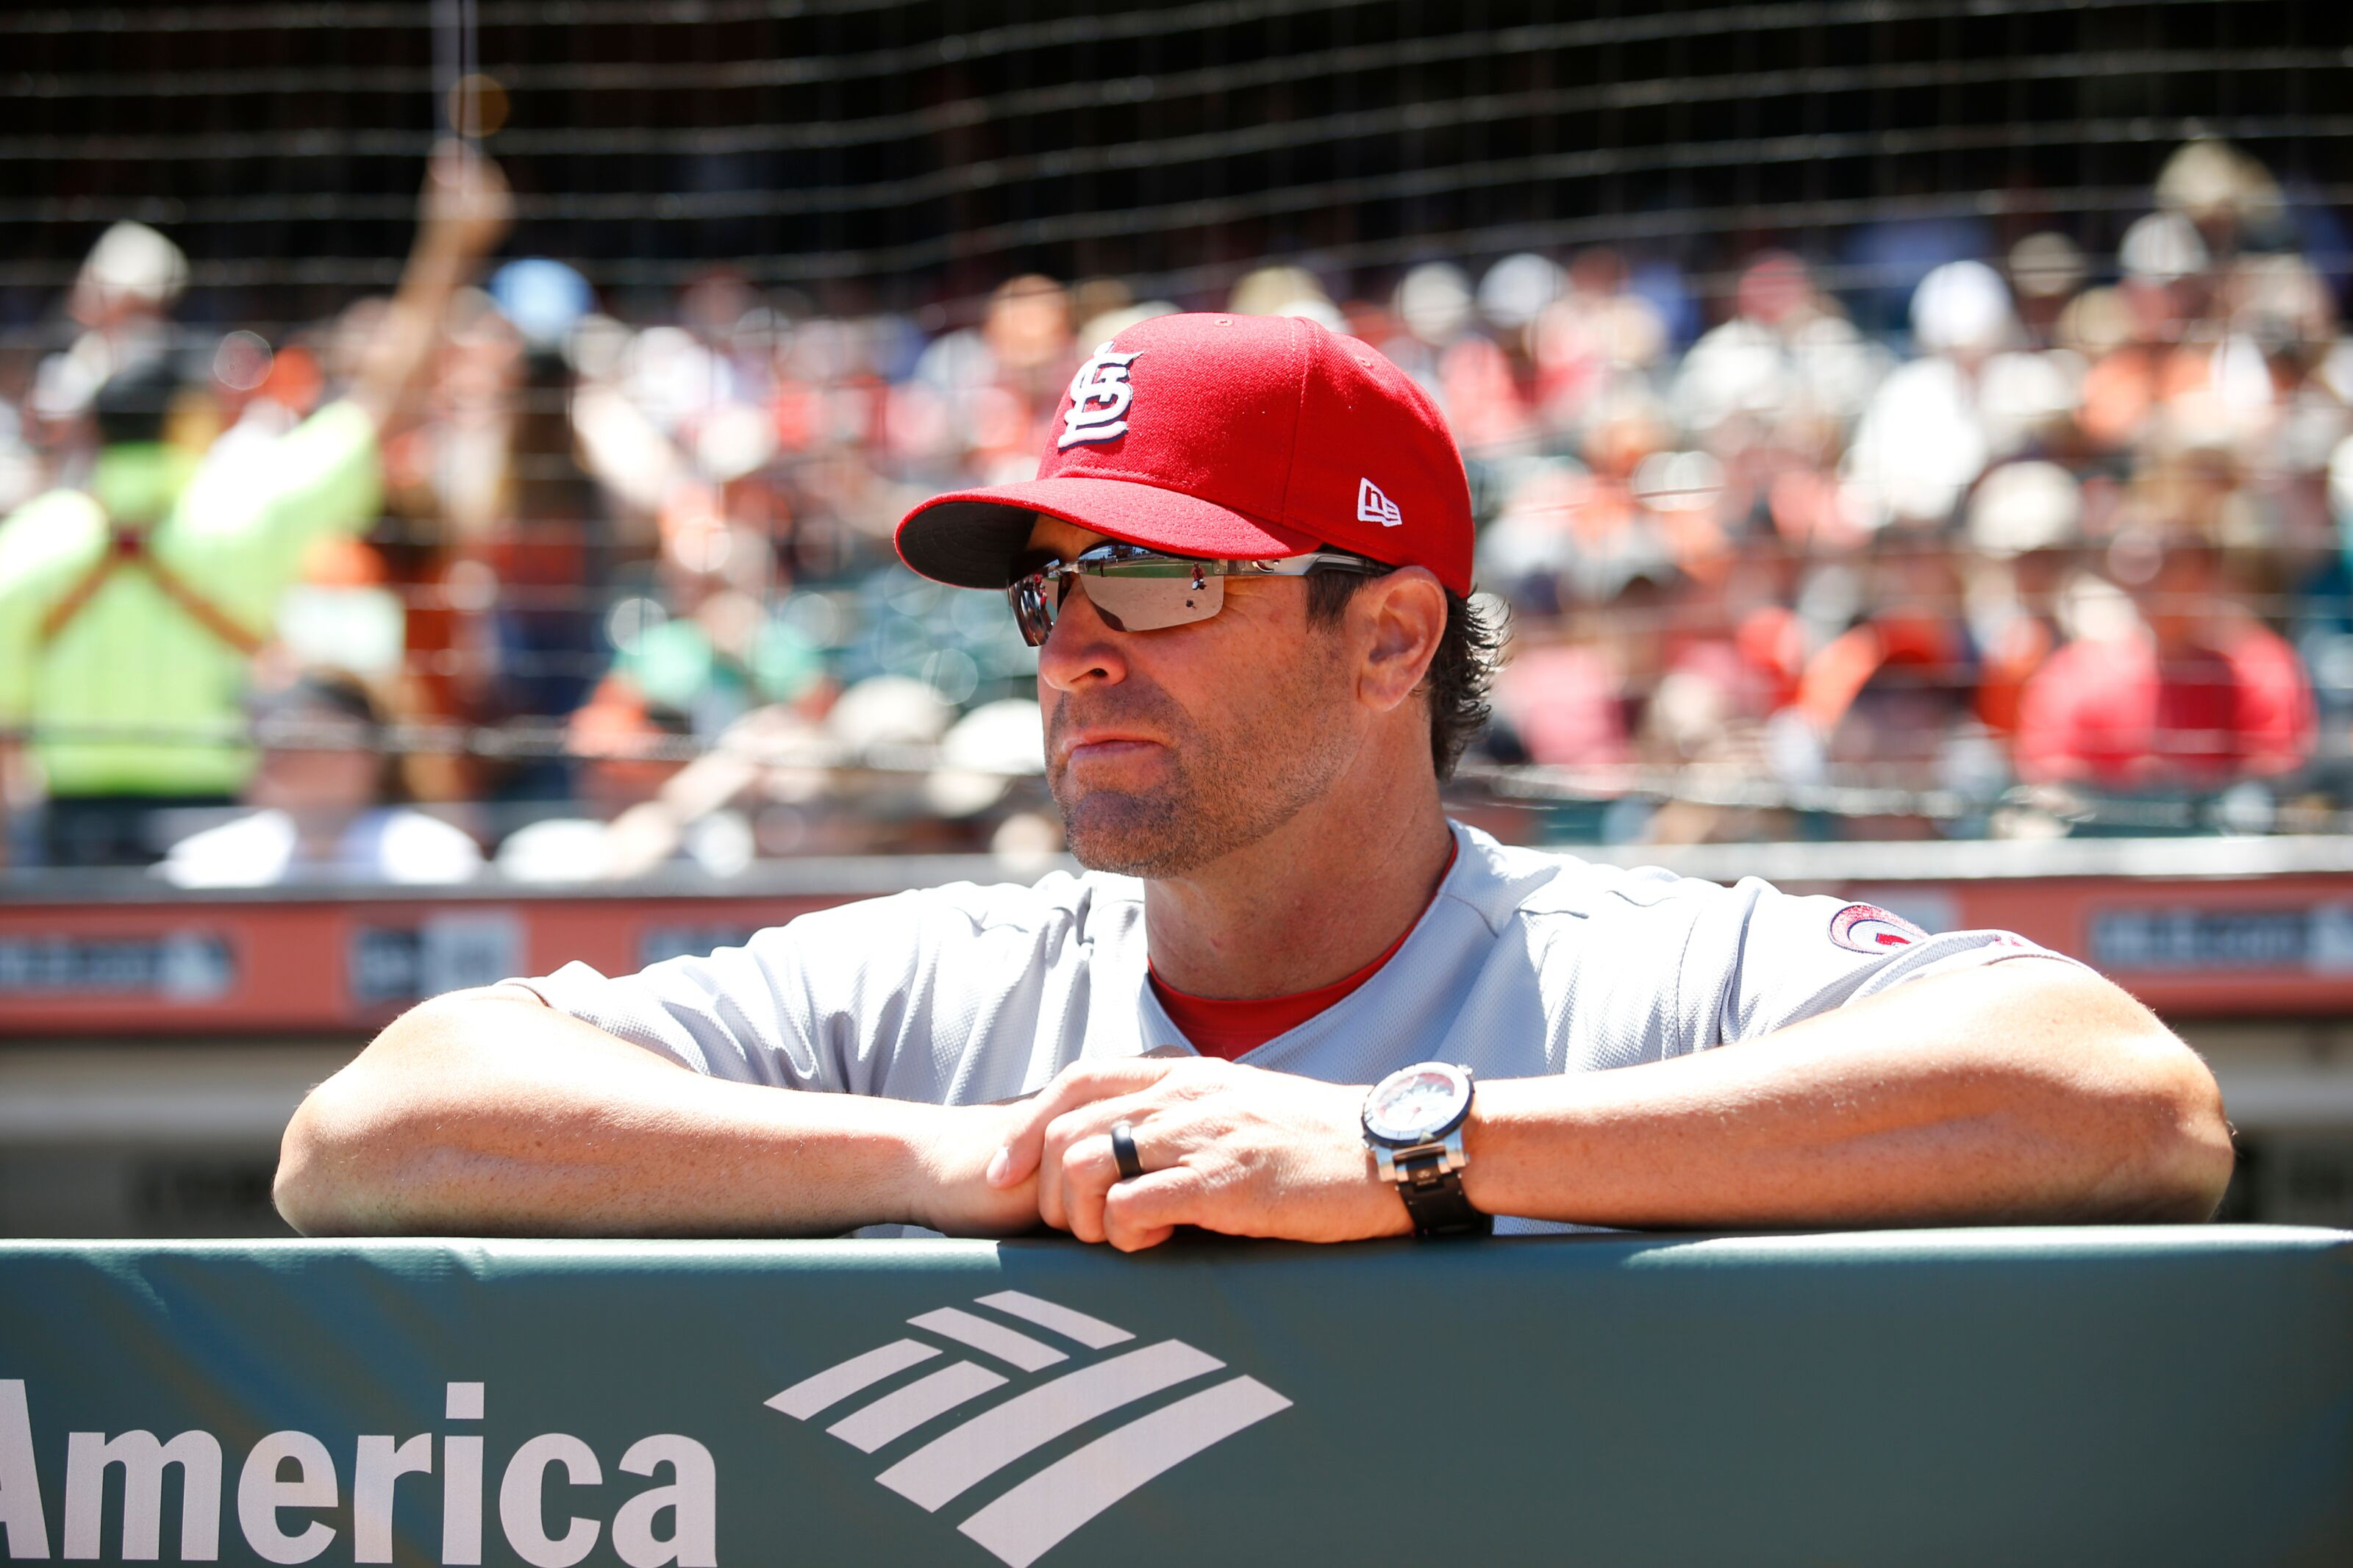 Kansas City Royals may have manager of future in Mike Matheny